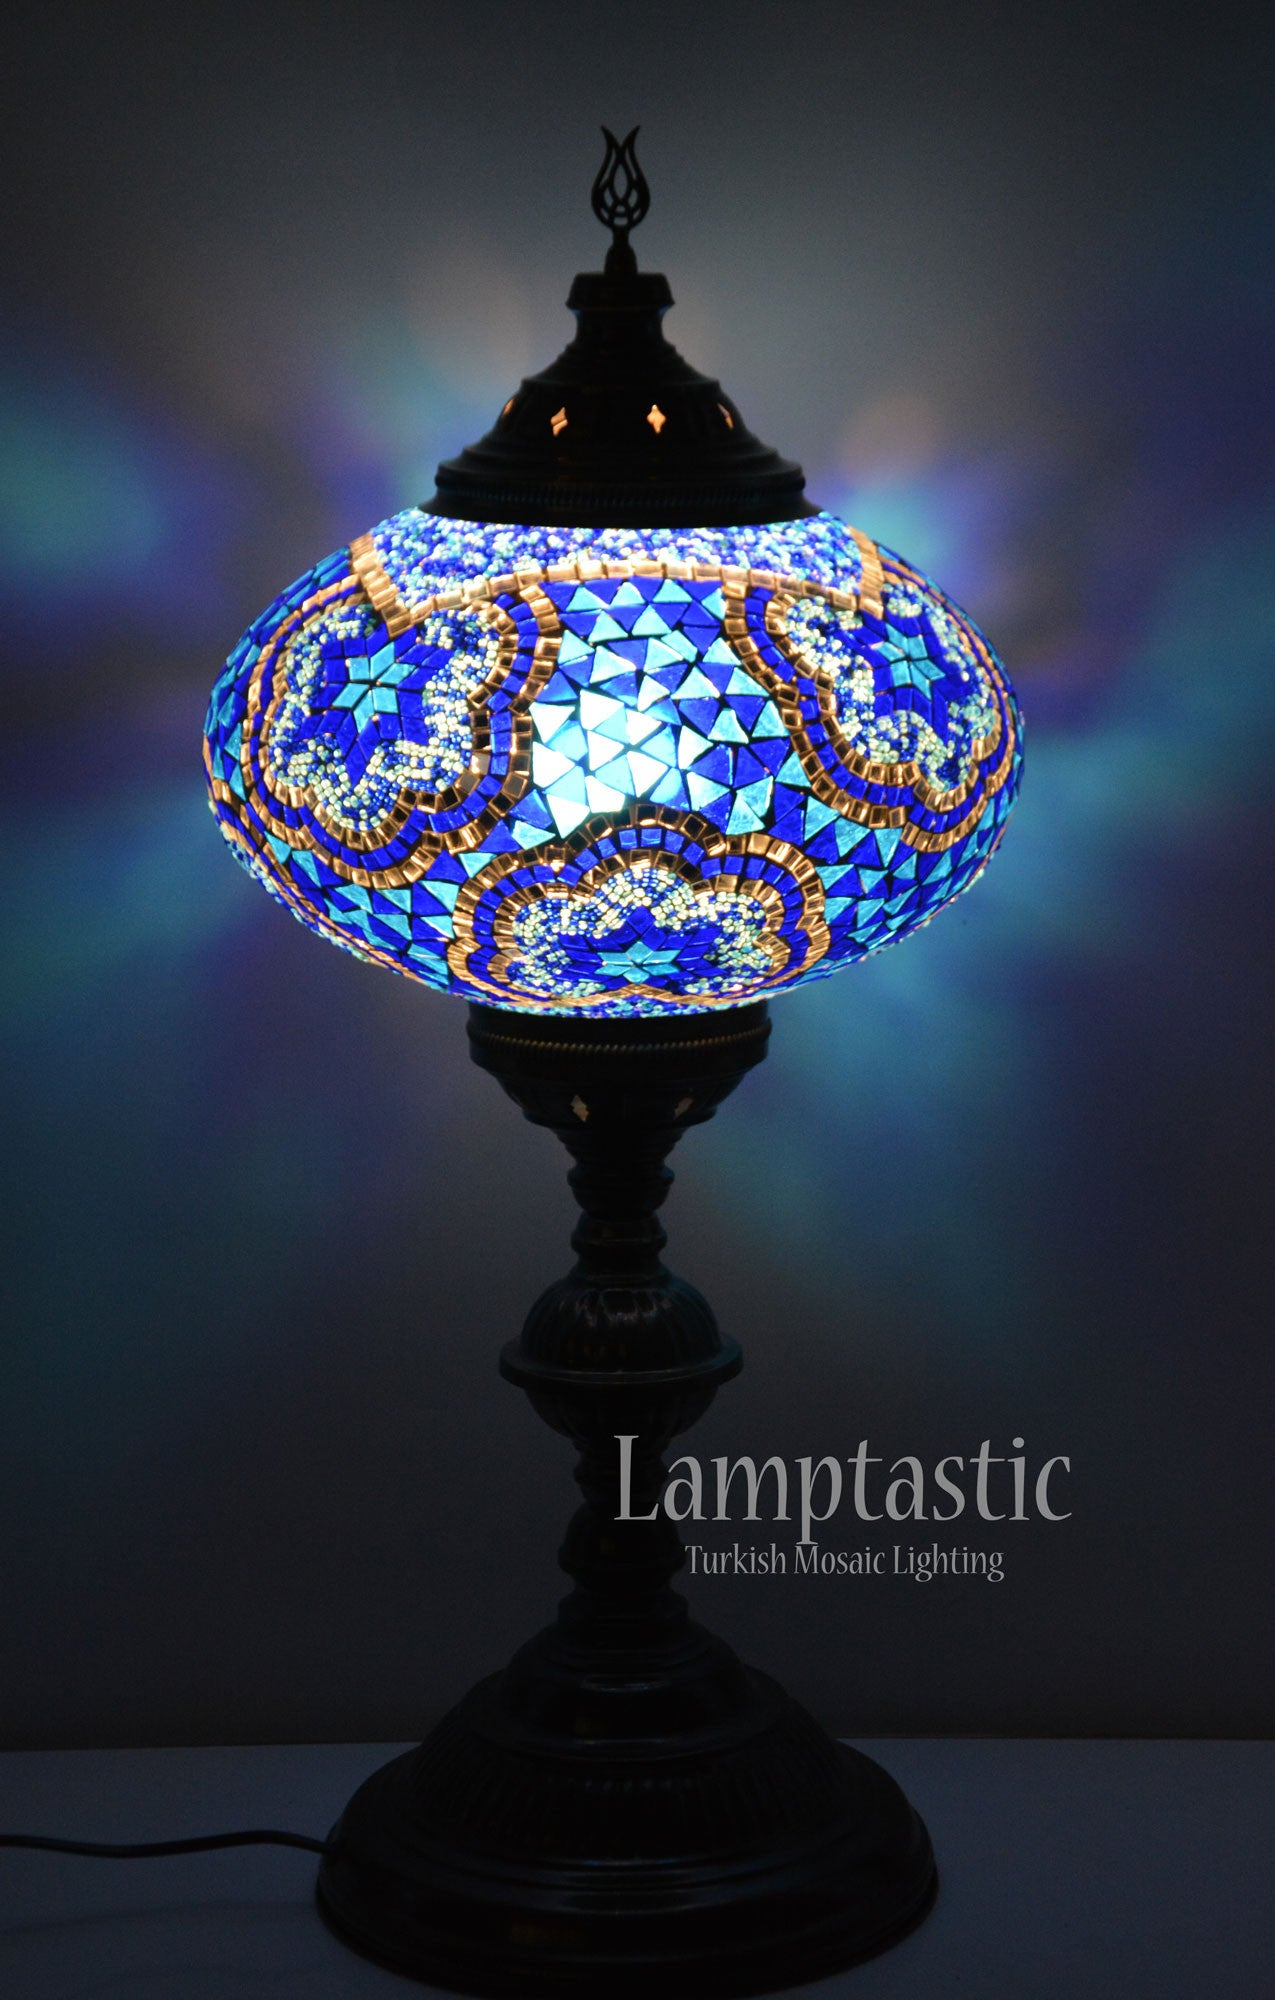 Blue Turkish Mosaic Glass Floor Lamp – Lamptastic